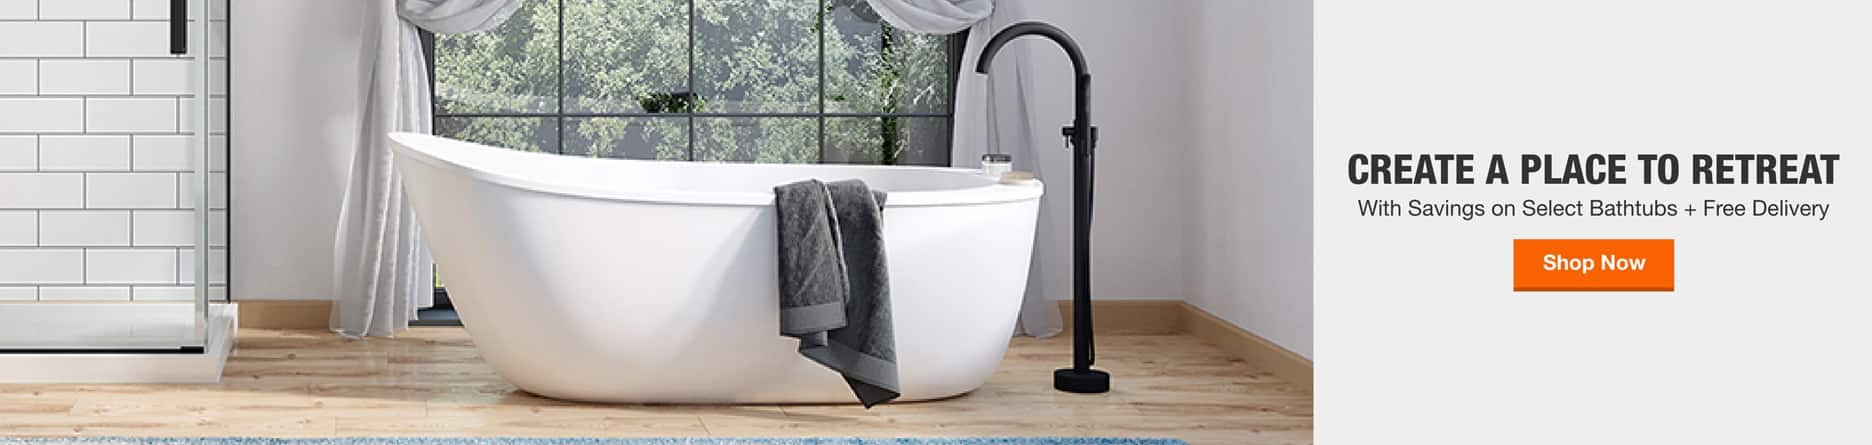 Create A Place To Retreat With Savings on Select Bathtubs + Free Delivery